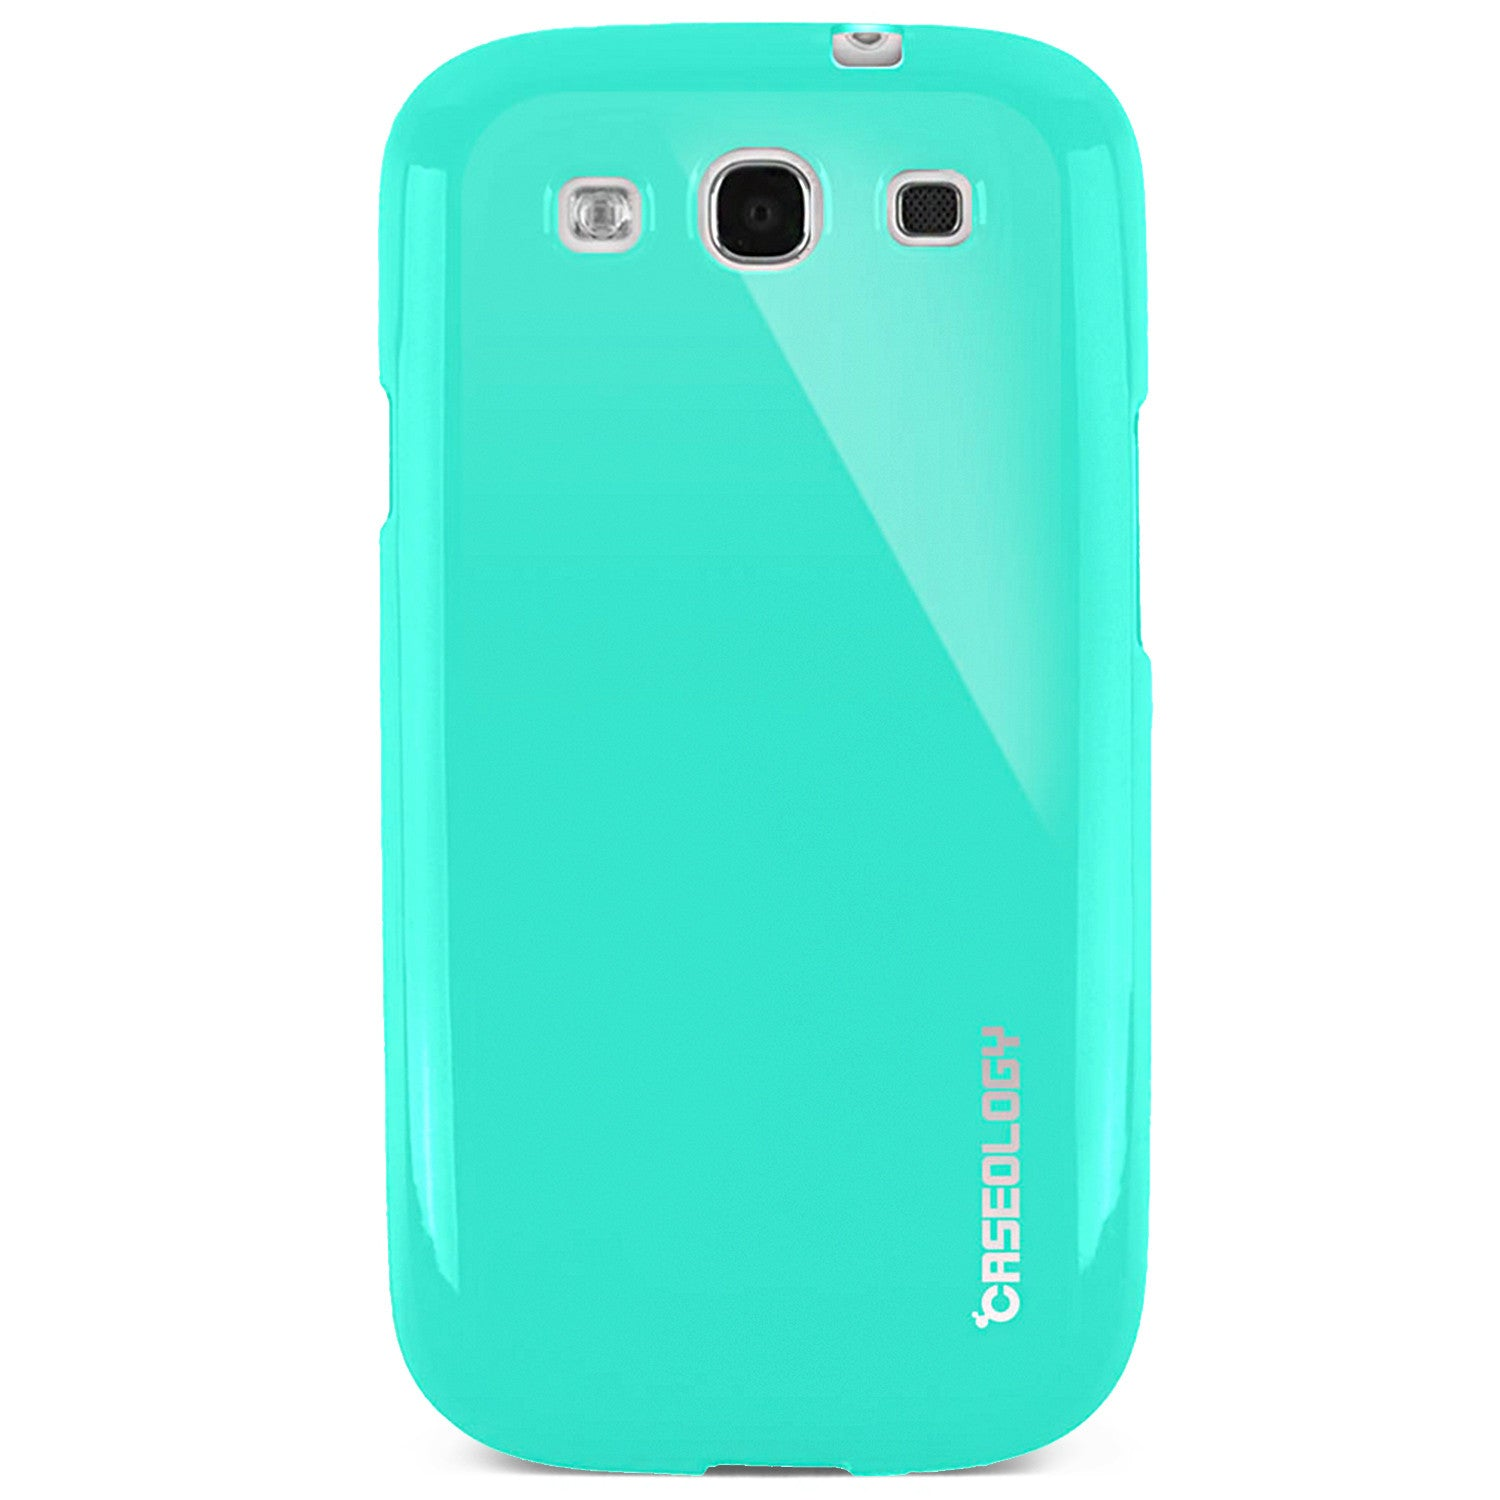 Galaxy S3 Case Drop Protection TPU